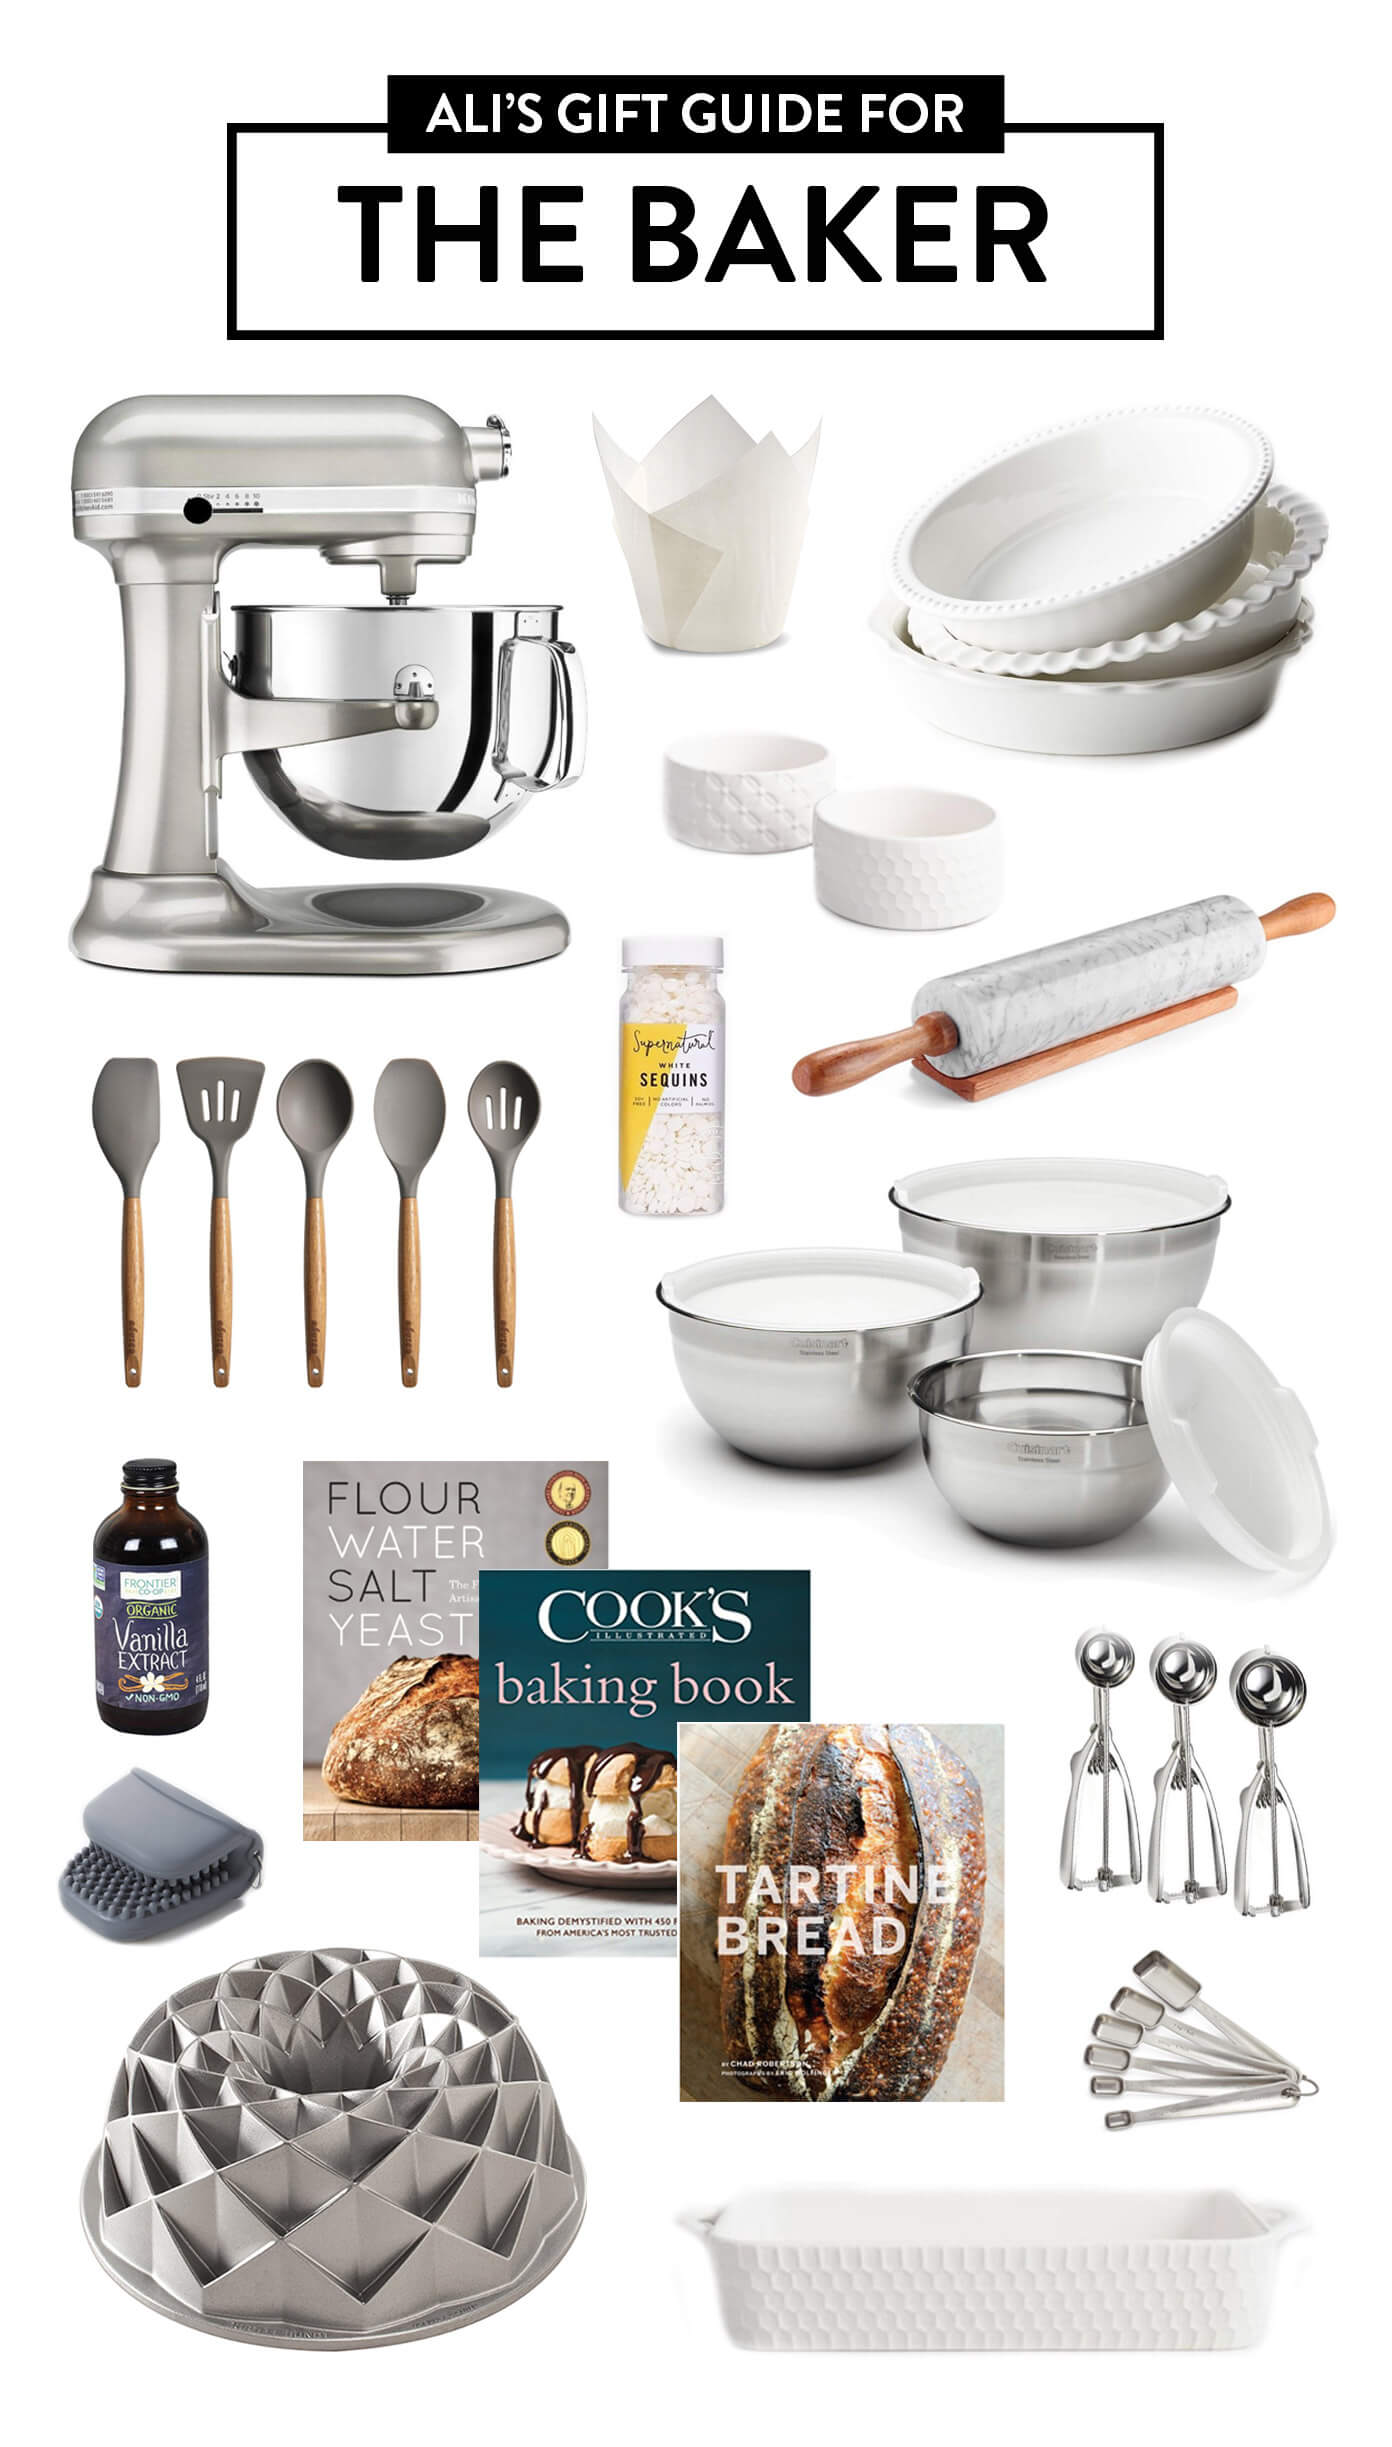 2018 Gimme Some Oven Holiday Gift Guide: The Baker